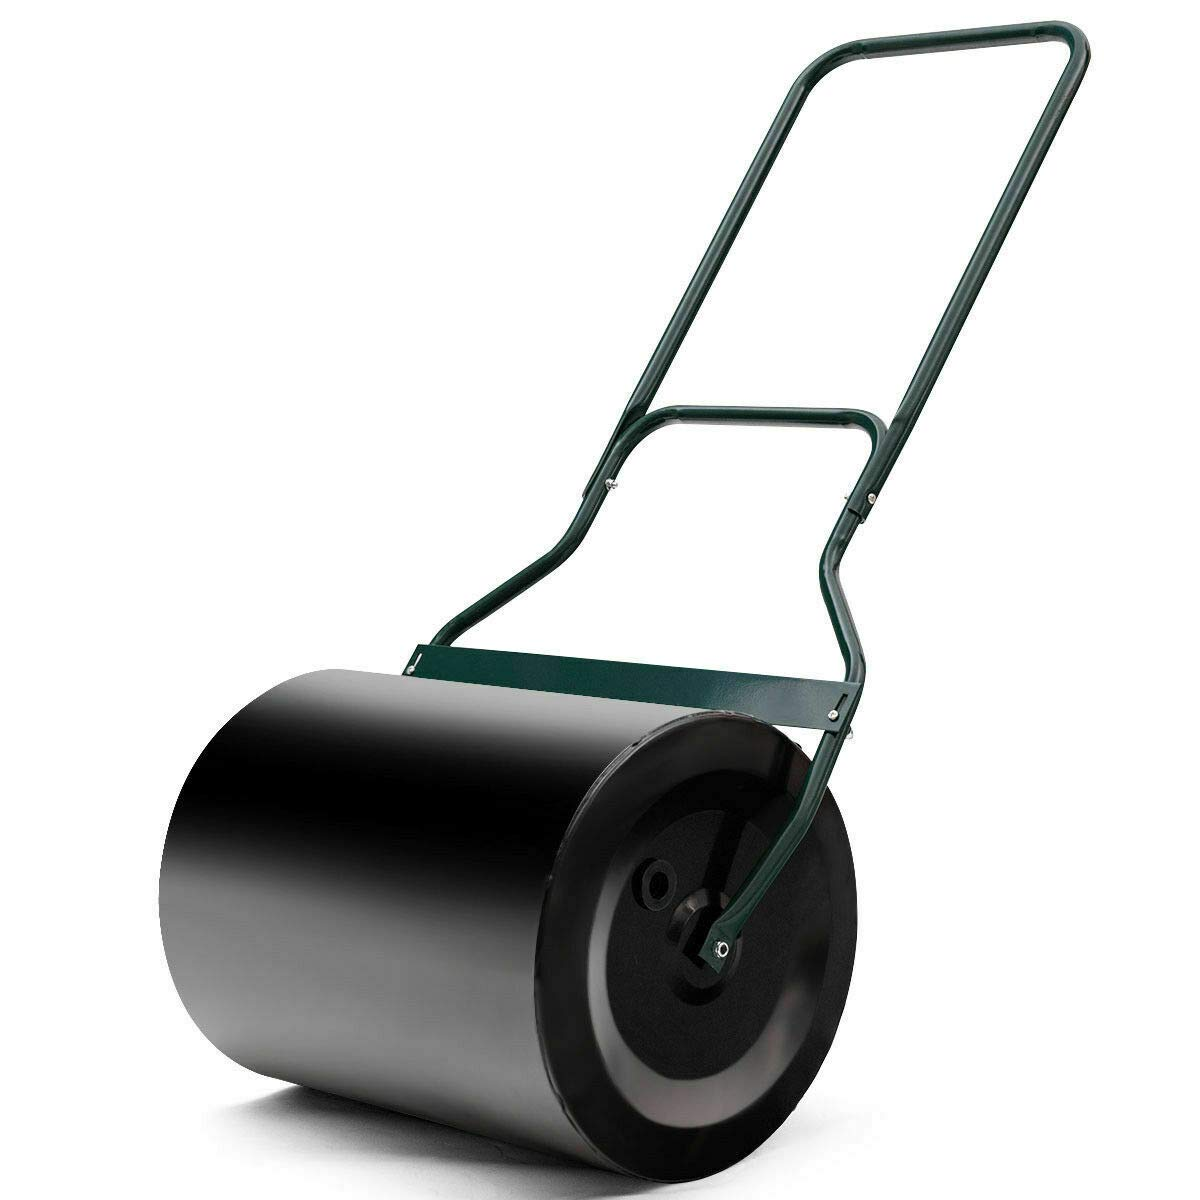 NanaPluz Tow Lawn Garden Roller Poly Push 16''x 19.5'' with Ebook by NanaPluz